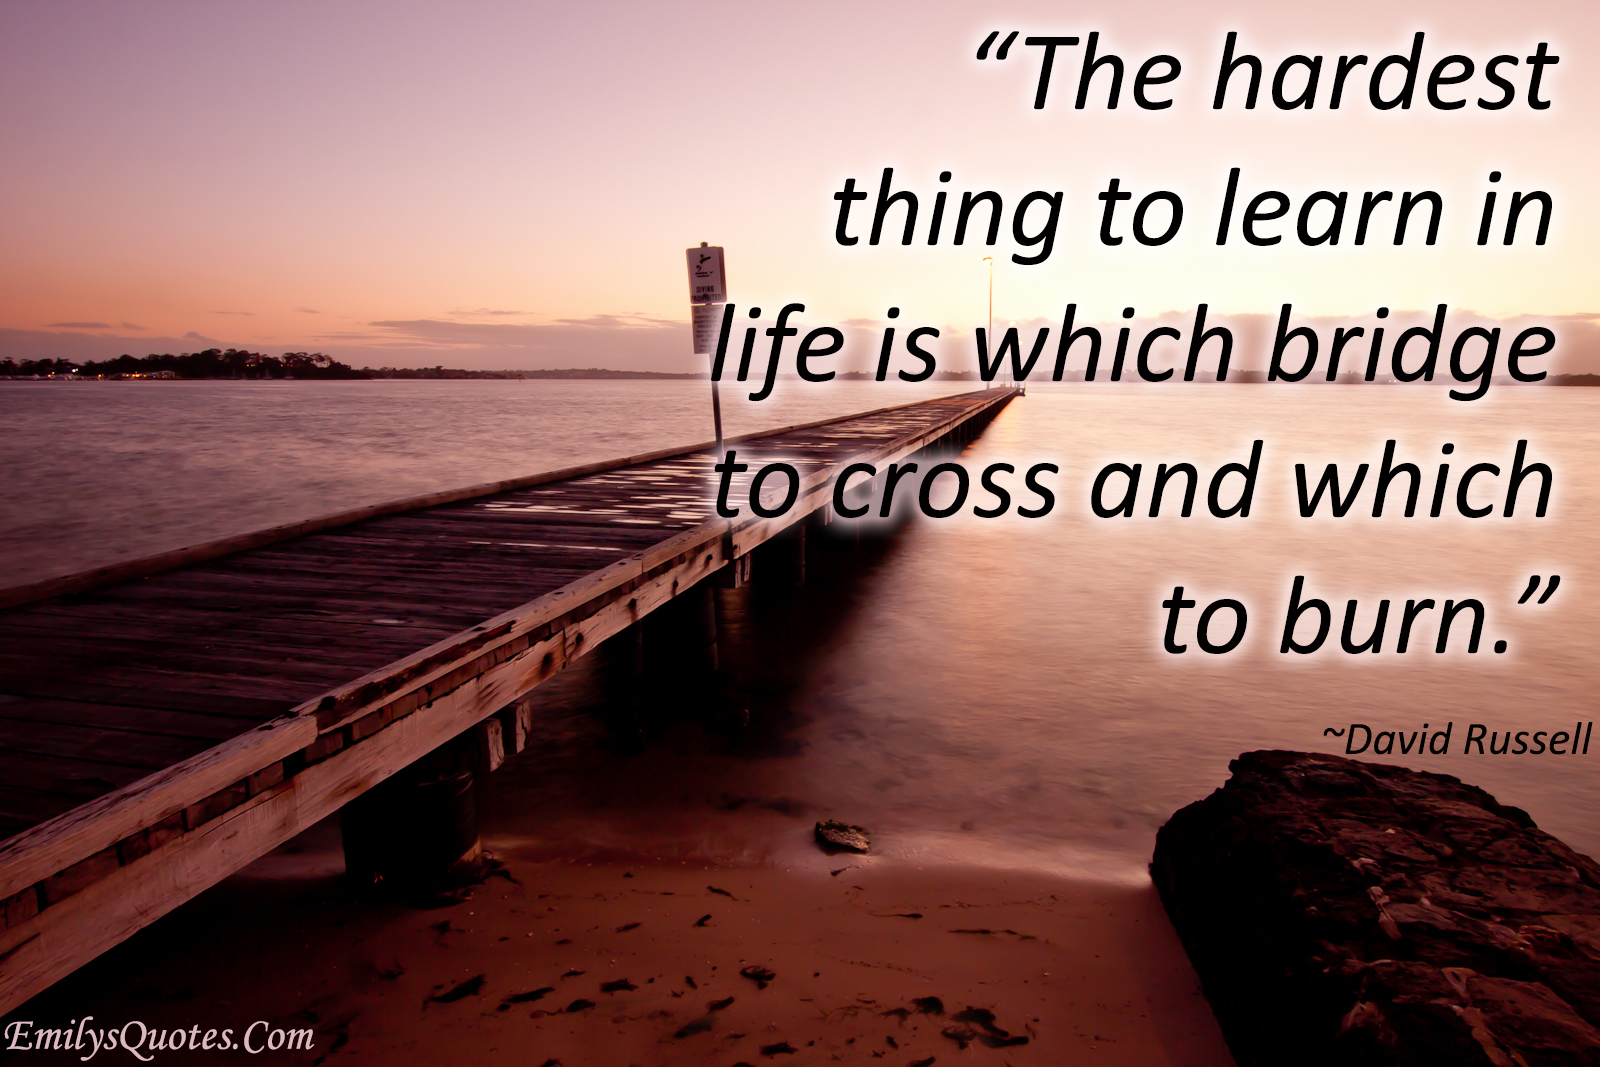 Life Quotes Com Alluring The Hardest Thing To Learn In Life Is Which Bridge To Cross And